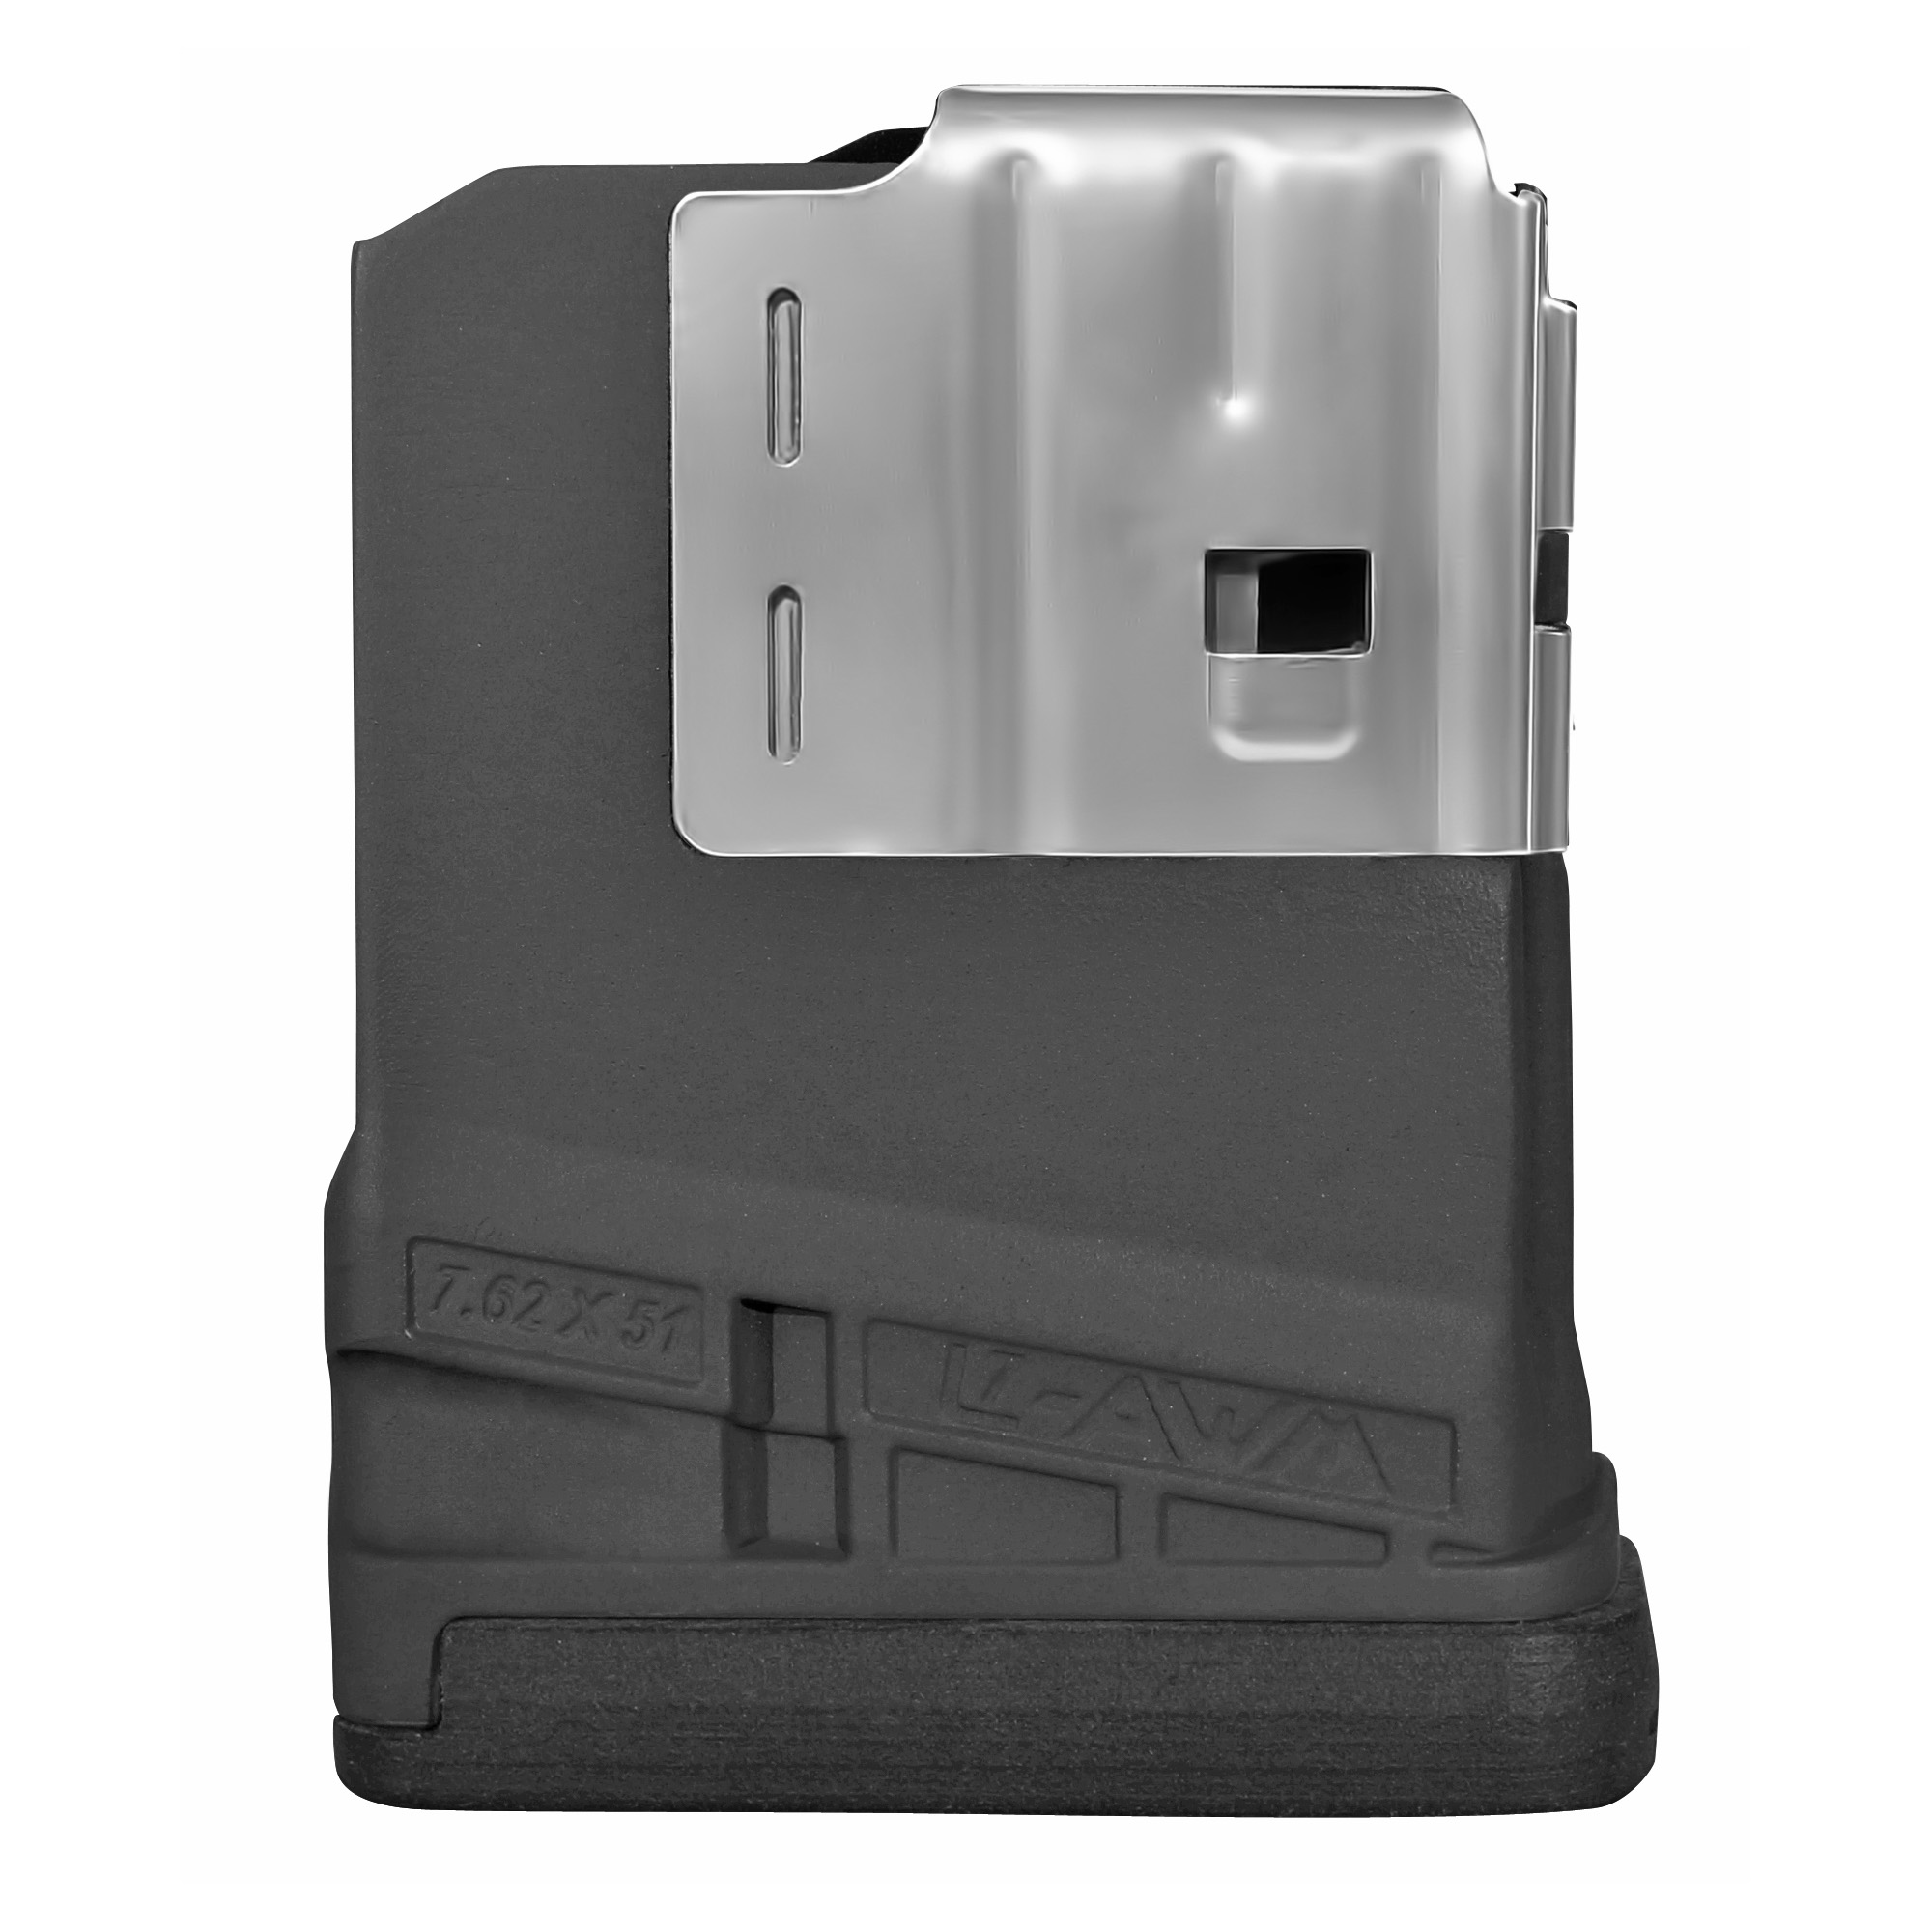 """The L7AWM is a lightweight magazine with an integrated front guard and welded steel feed lip which provides maximum stiffness and reliability while preventing dimpling to the front of the magazine. A switchable drain in the floor plate lock comes standard on all L7s"""" allowing users to configure the magazine for either water-borne or extreme dust conditions. The L7AWM is designed to work in multiple weapon systems - SR25"""" DPMS 308"""" SIG 716"""" LM308"""" etc."""